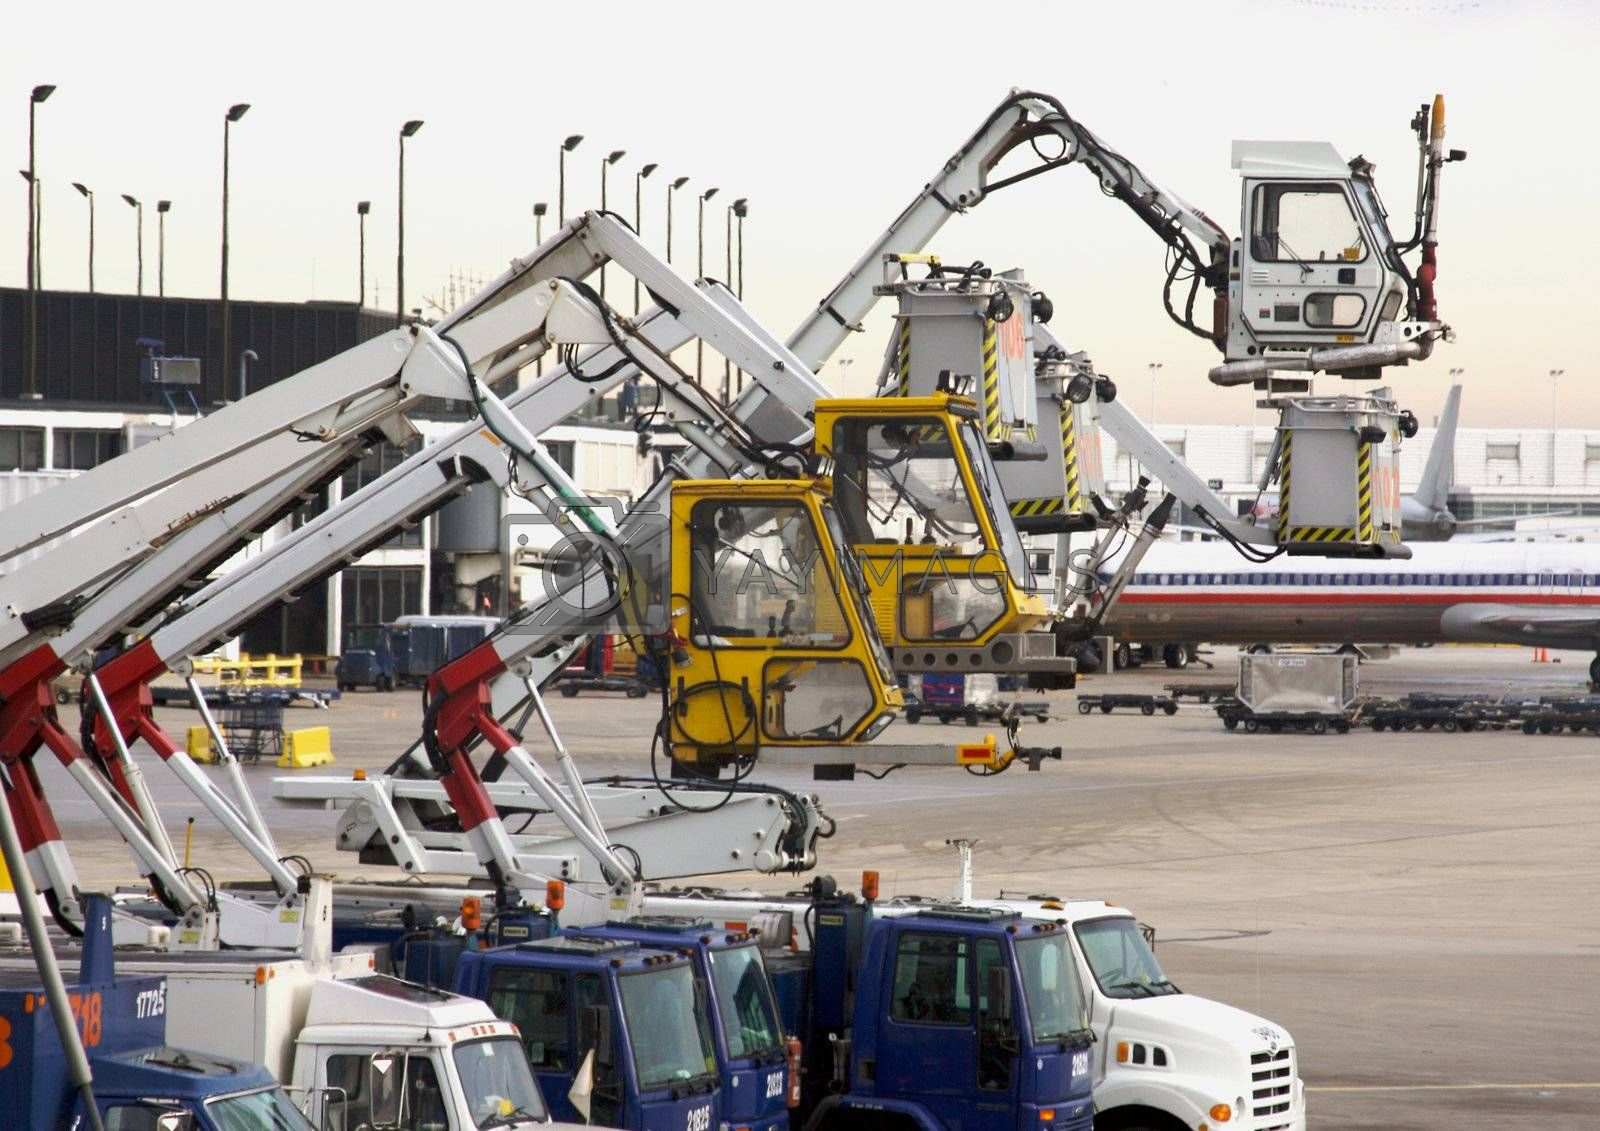 Deicing Equipment Ready at an Airport During A Blustry Winter Day